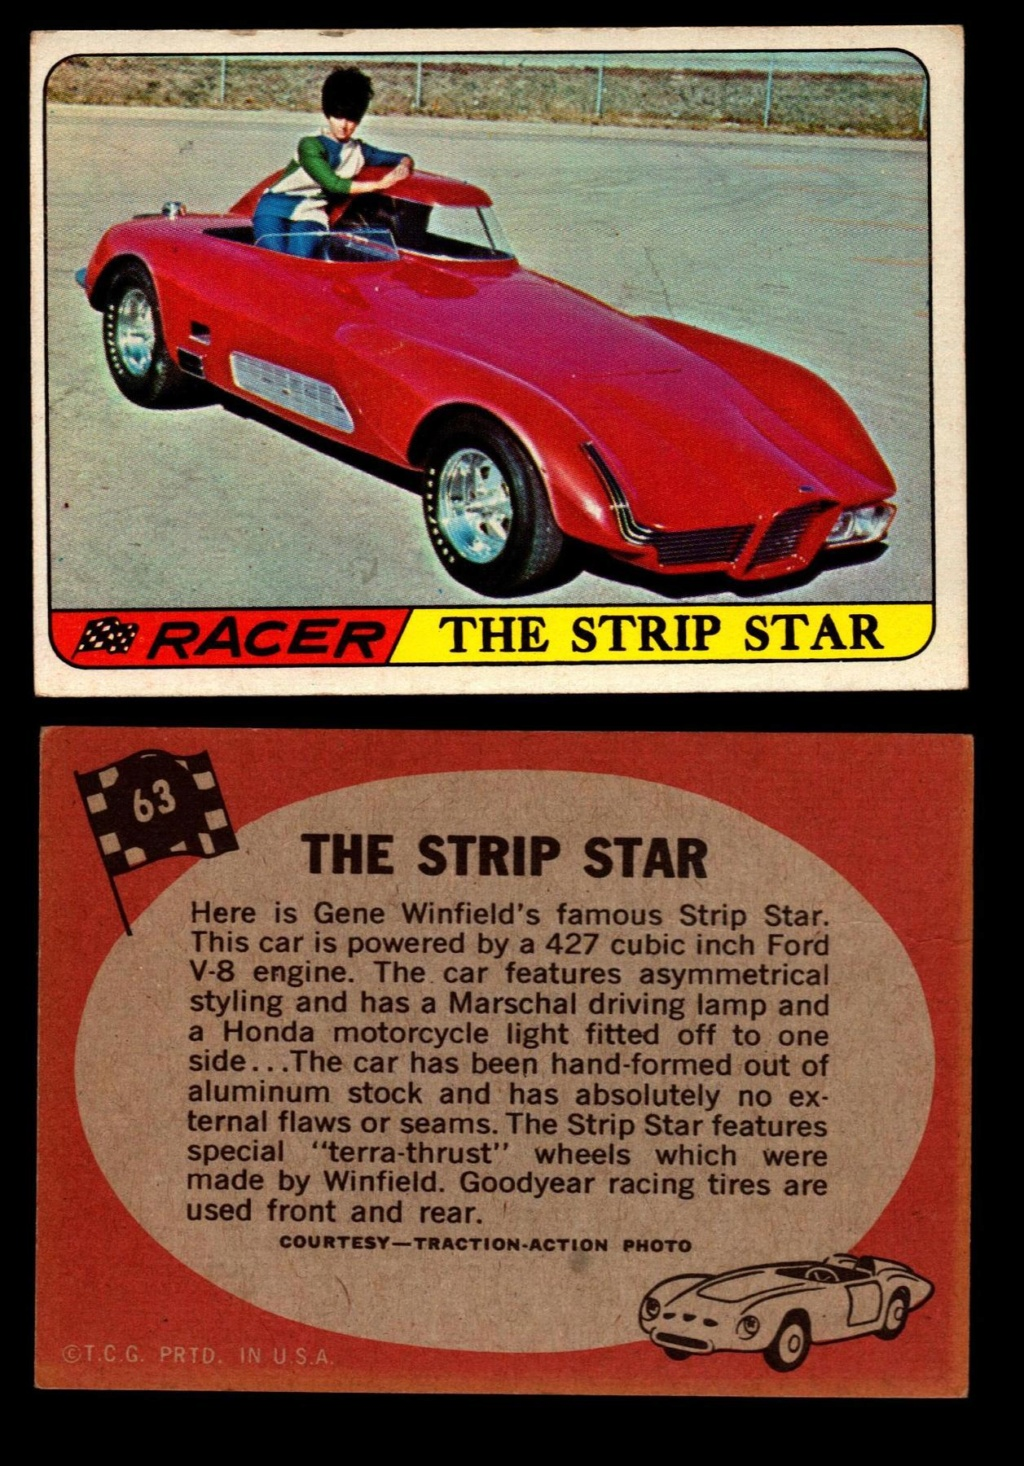 Hot Rods Topps - Vintage Trading Cards 1968 - Custom car - Dragster - Racer - Dream car - Barris Kustom City - Ed Roth Darrill Starbird, Gene Winfield, Bill Cuchenberry - Page 3 63_0e110